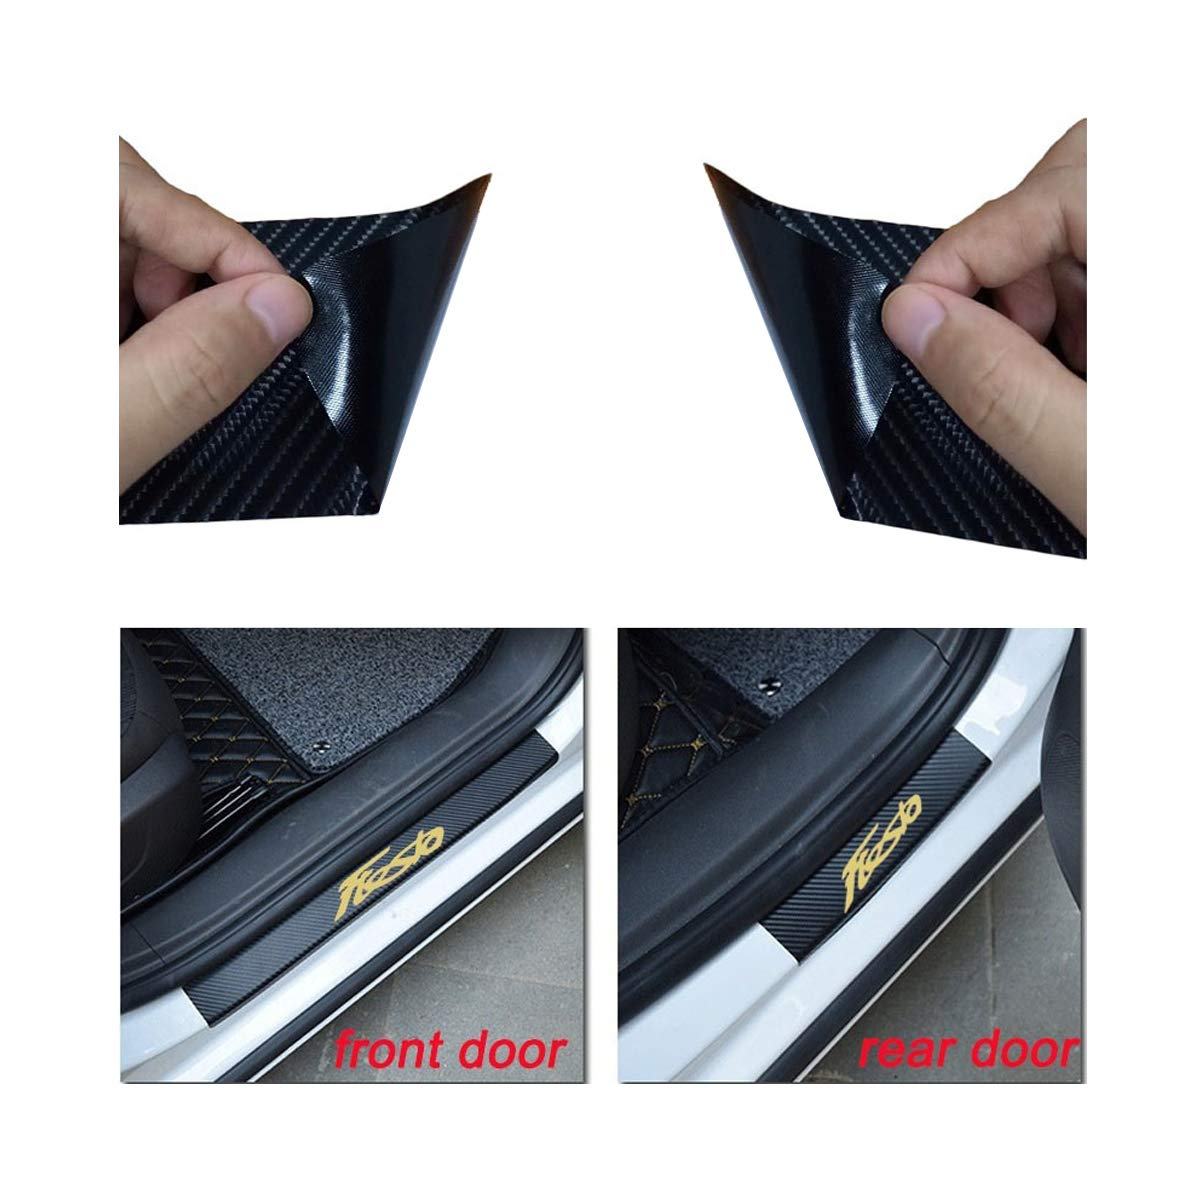 Universal Car Door Sill Scuff Plate Protector Pedals with Mustang Logo Door Sill Protector Stickers Door Sill Protector Covers for Ford series Vinyl Door Sill Entry Guards Cover for car White 2pcs